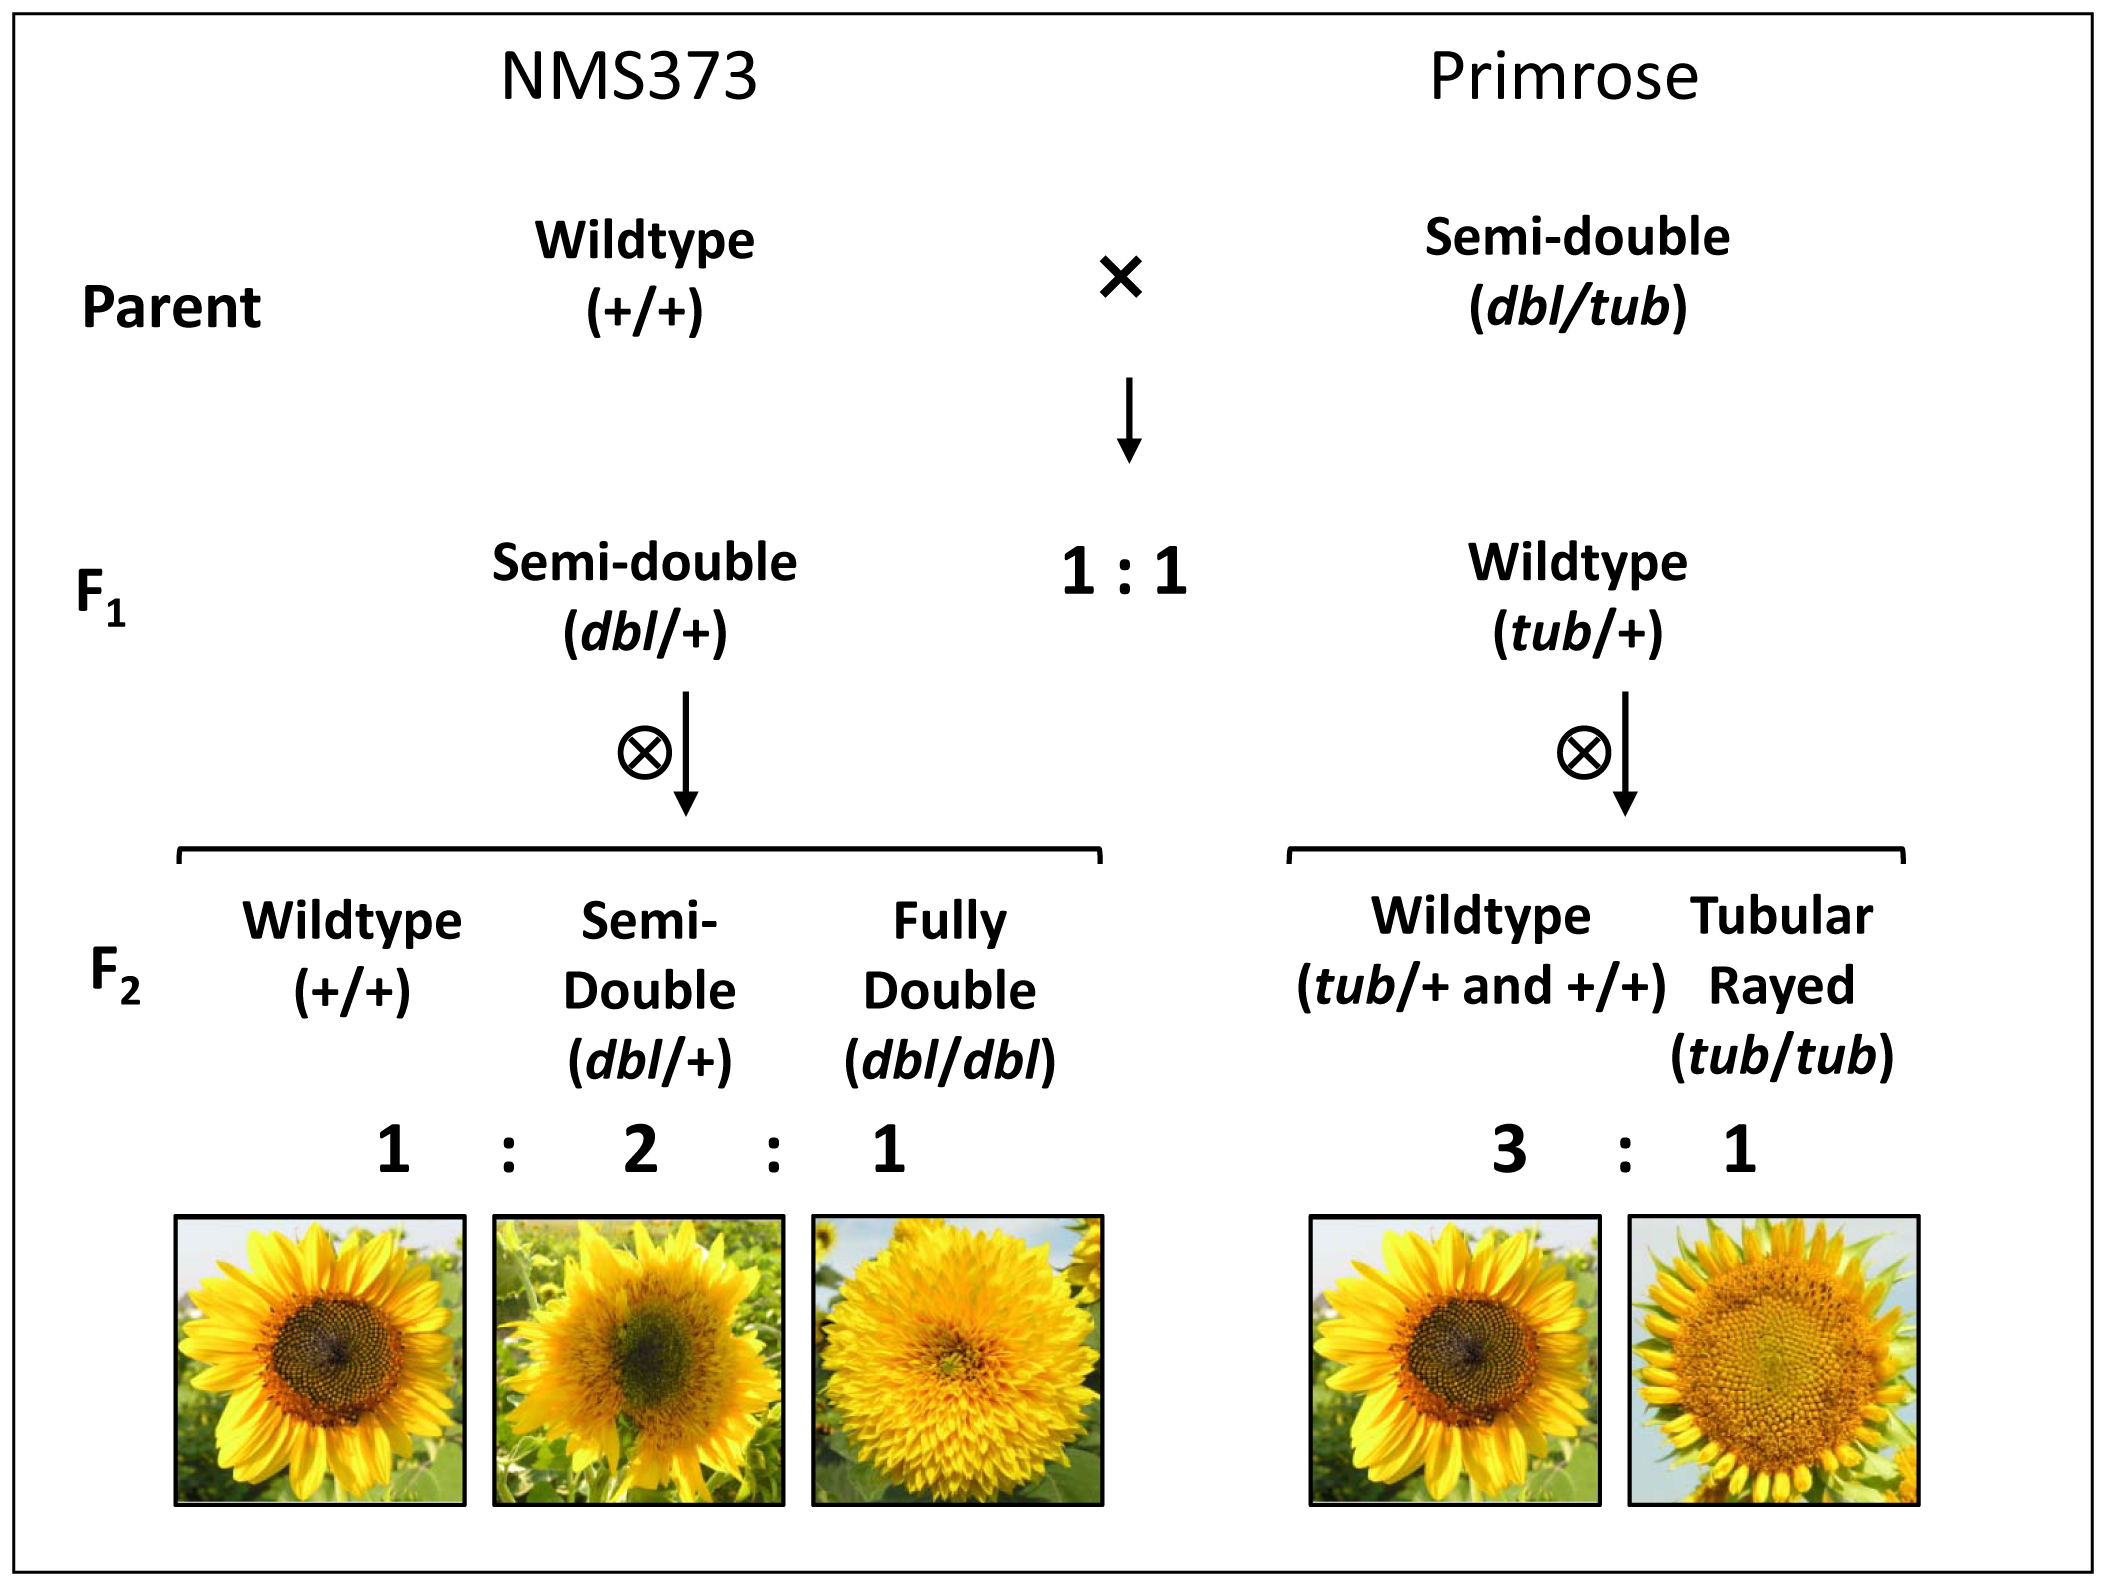 Crossing design employed to investigate the genetics of floral symmetry in sunflower with representative phenotypes shown only for the F<sub>2</sub>.